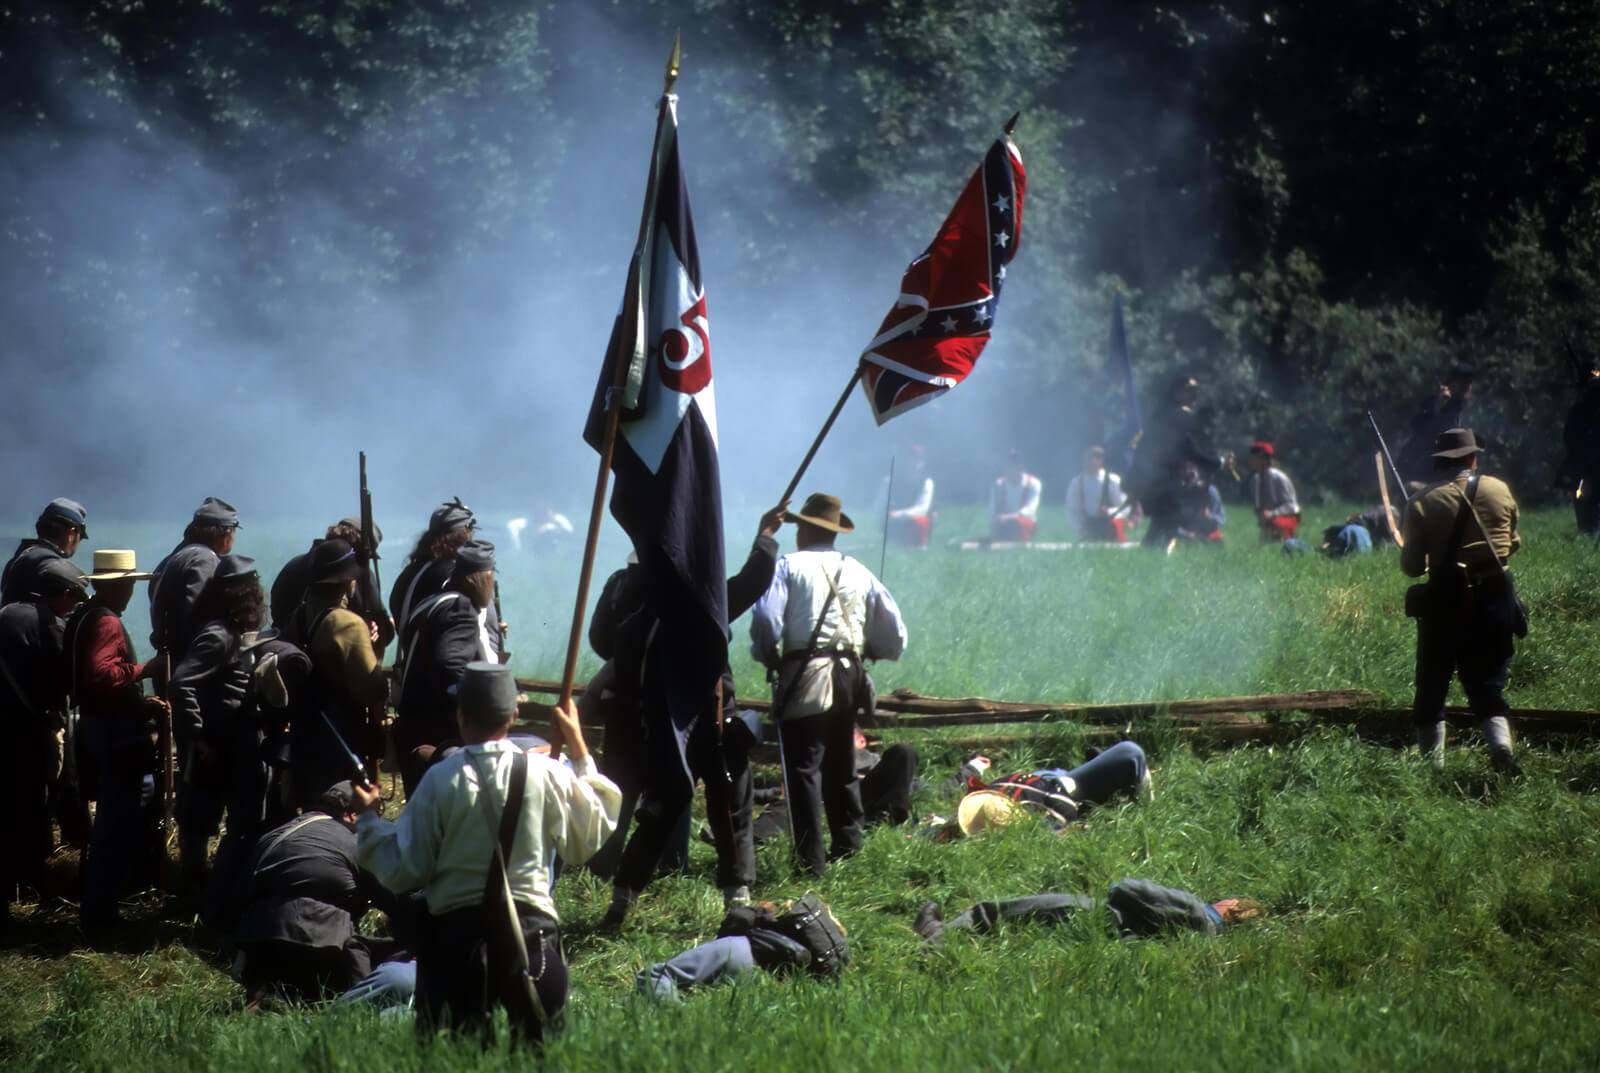 About the Battle of Gettysburg